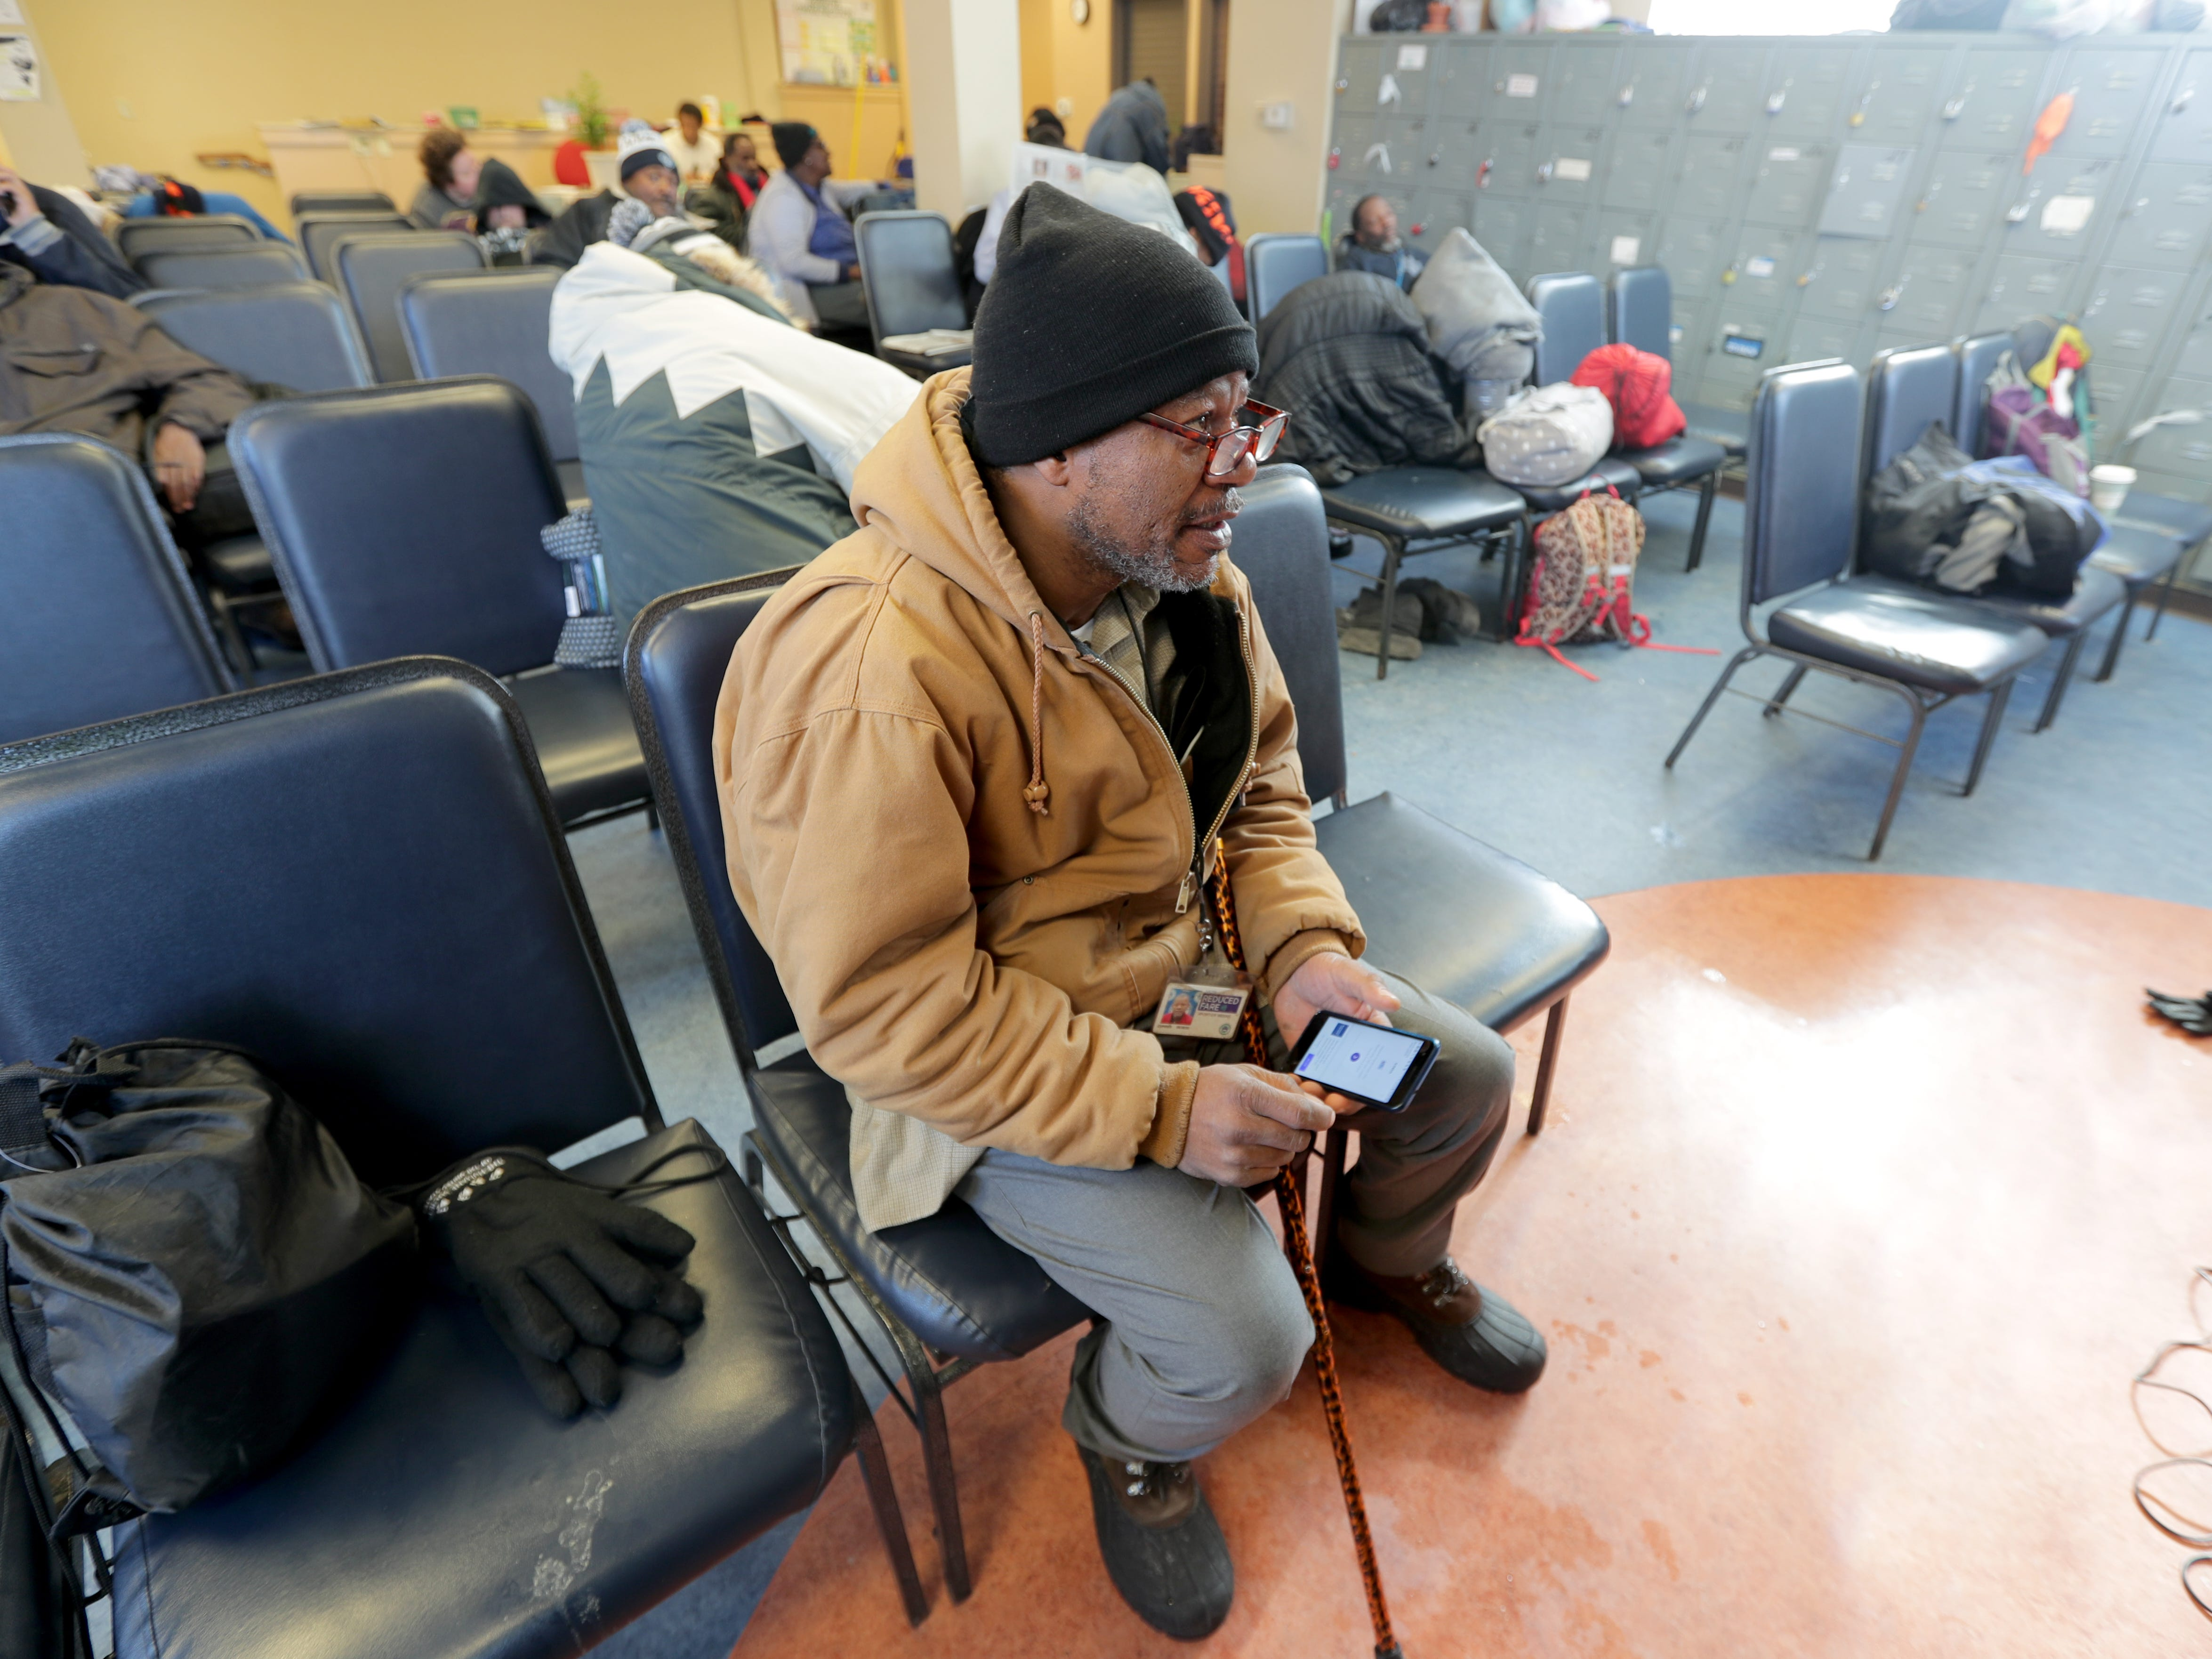 Aportier Weeks finds warmth at Repairers of the Breach shelter on West Vliet Street in Milwaukee.